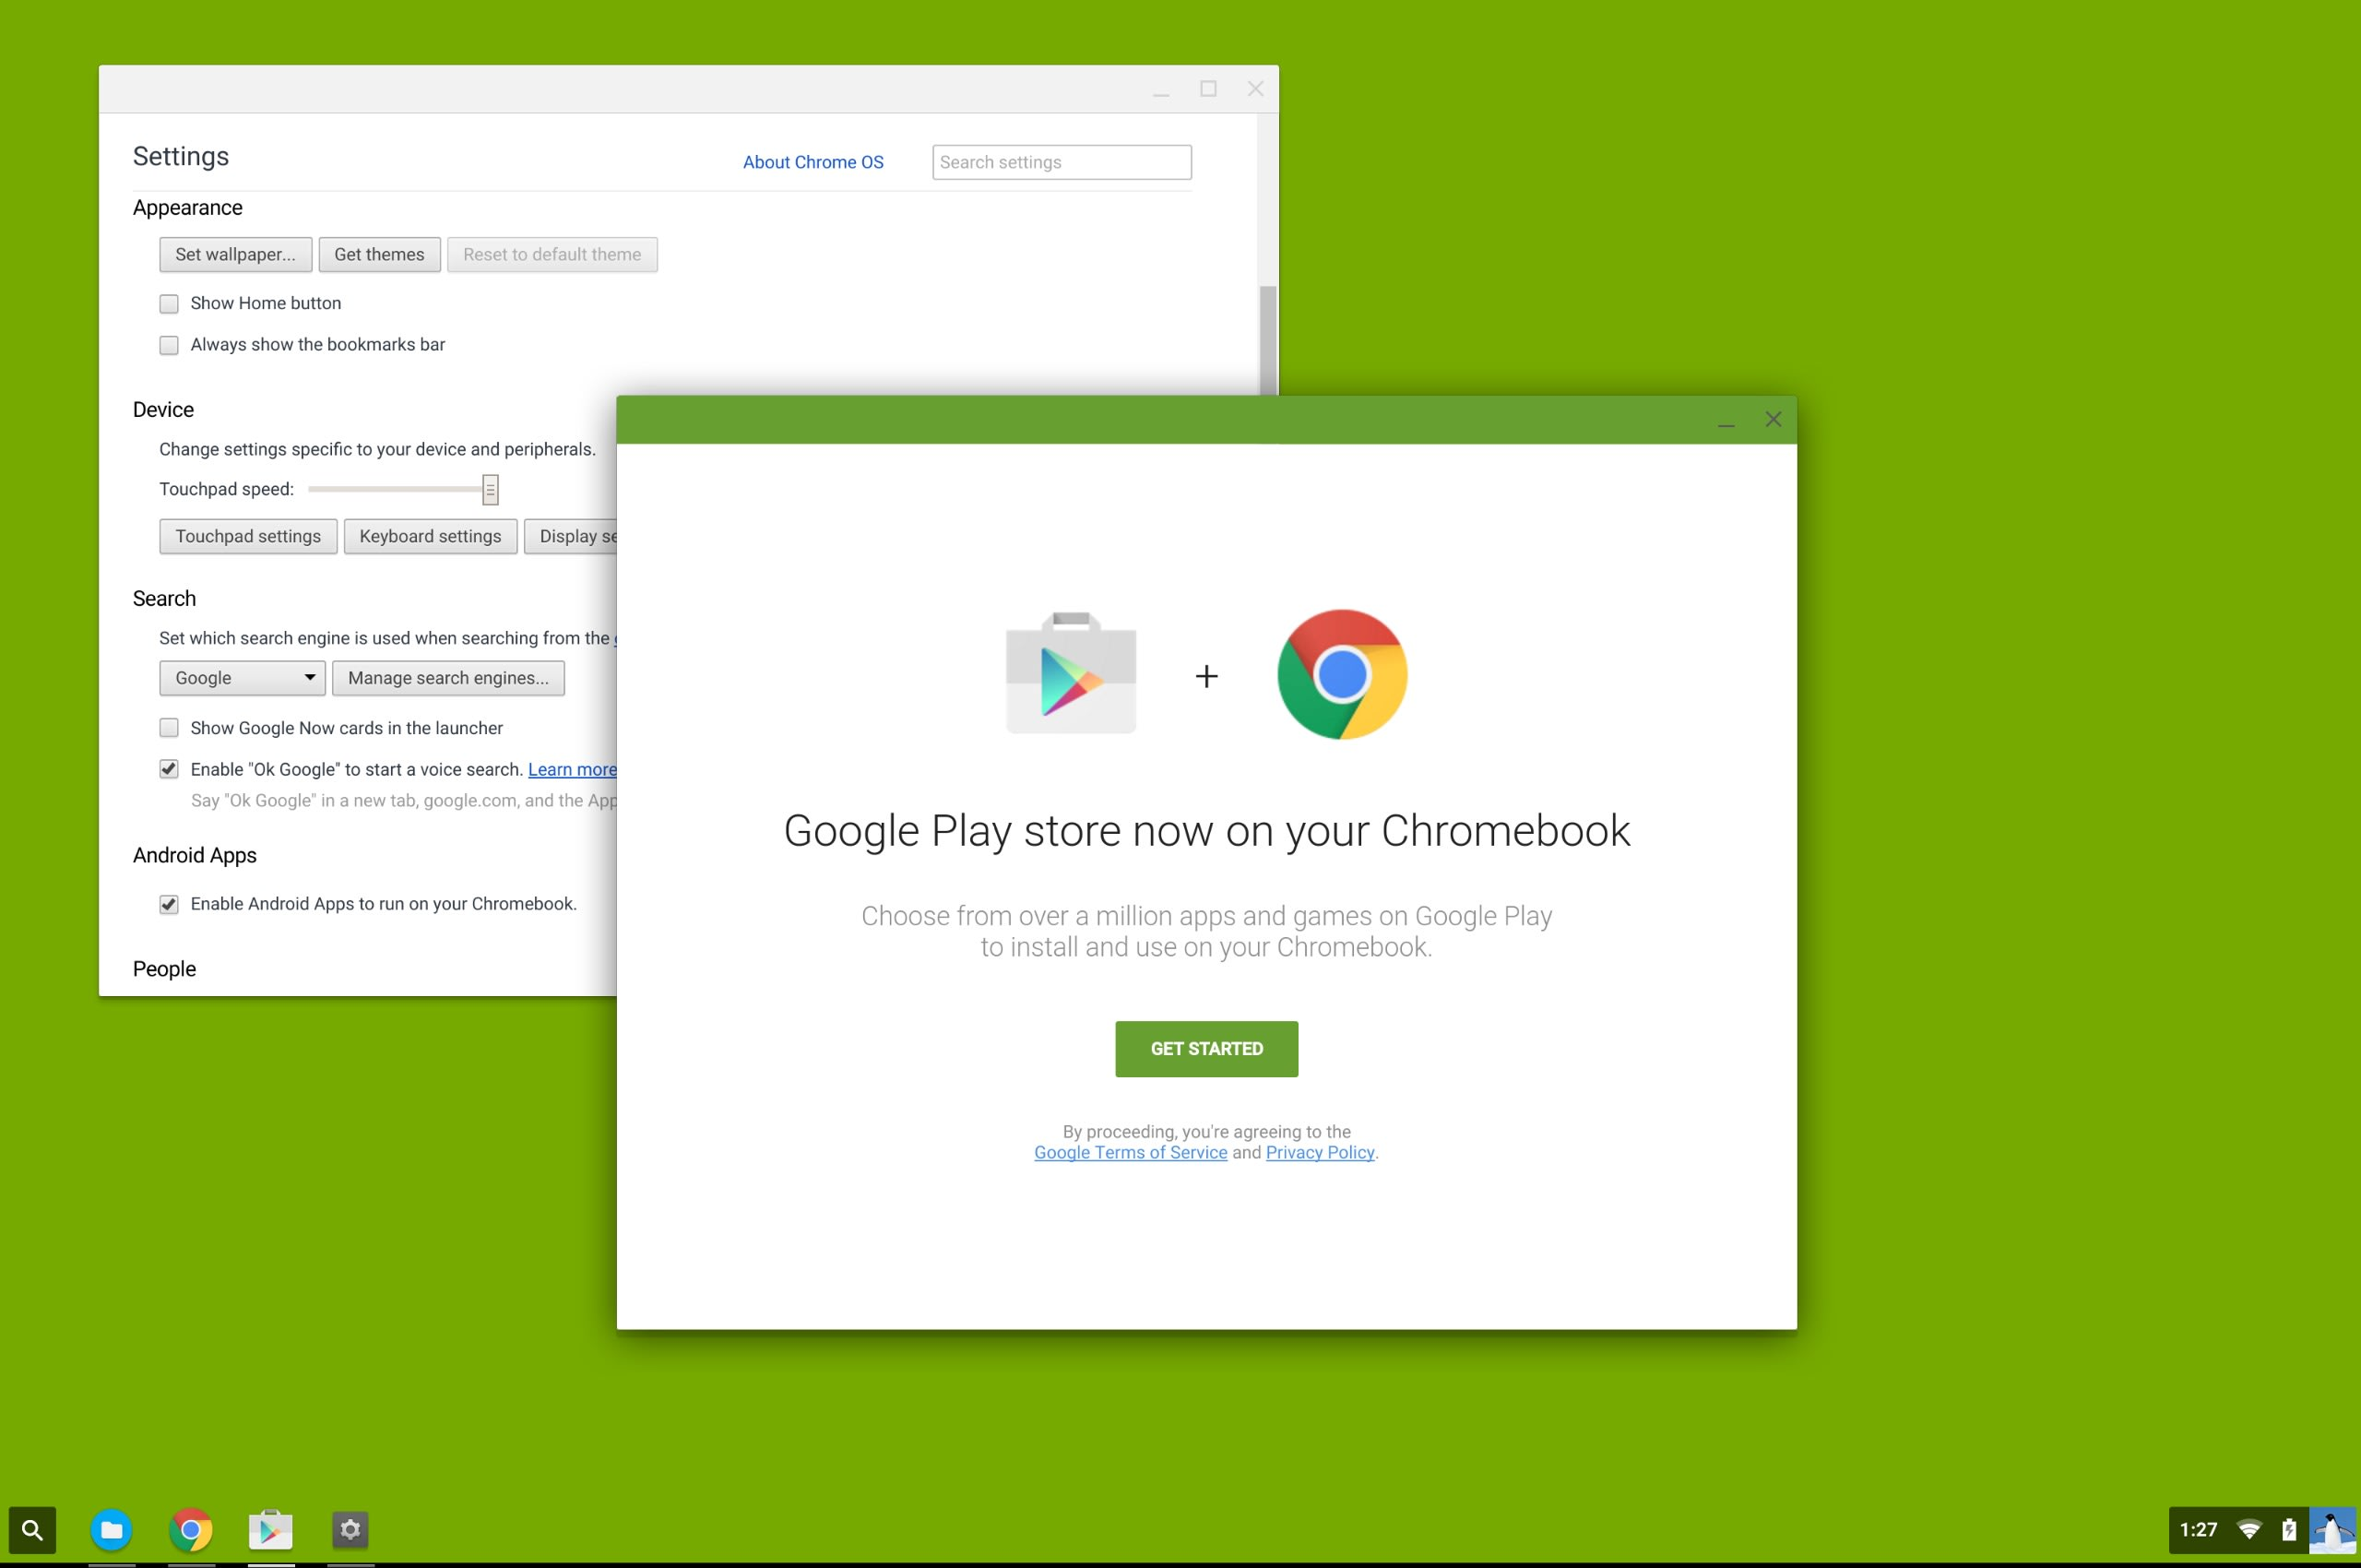 Google will soon bring the Android Play Store to Chromebooks